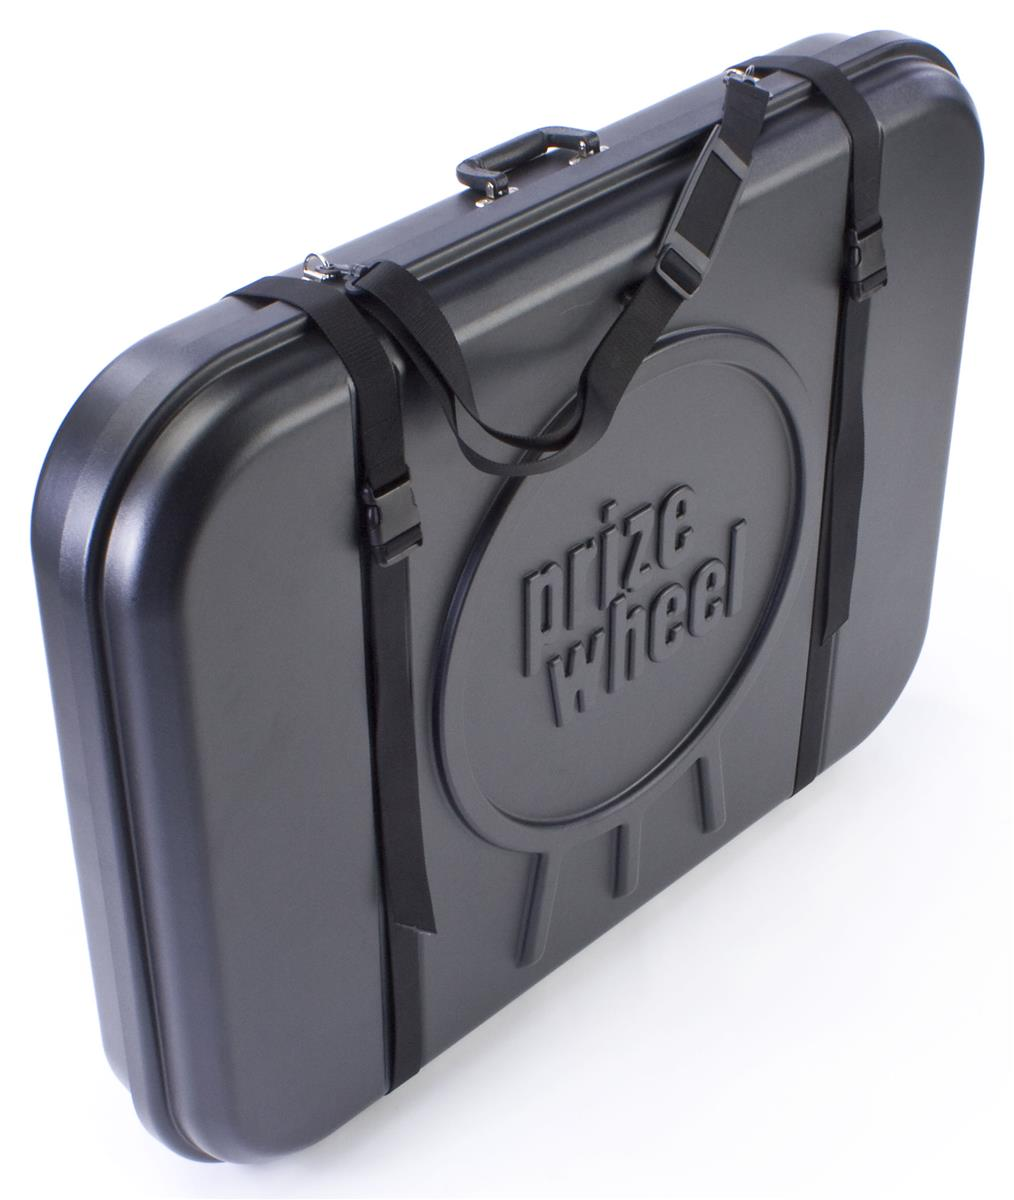 "Carrying Case for Prize Wheels, up to 31"" Diameter - Black"